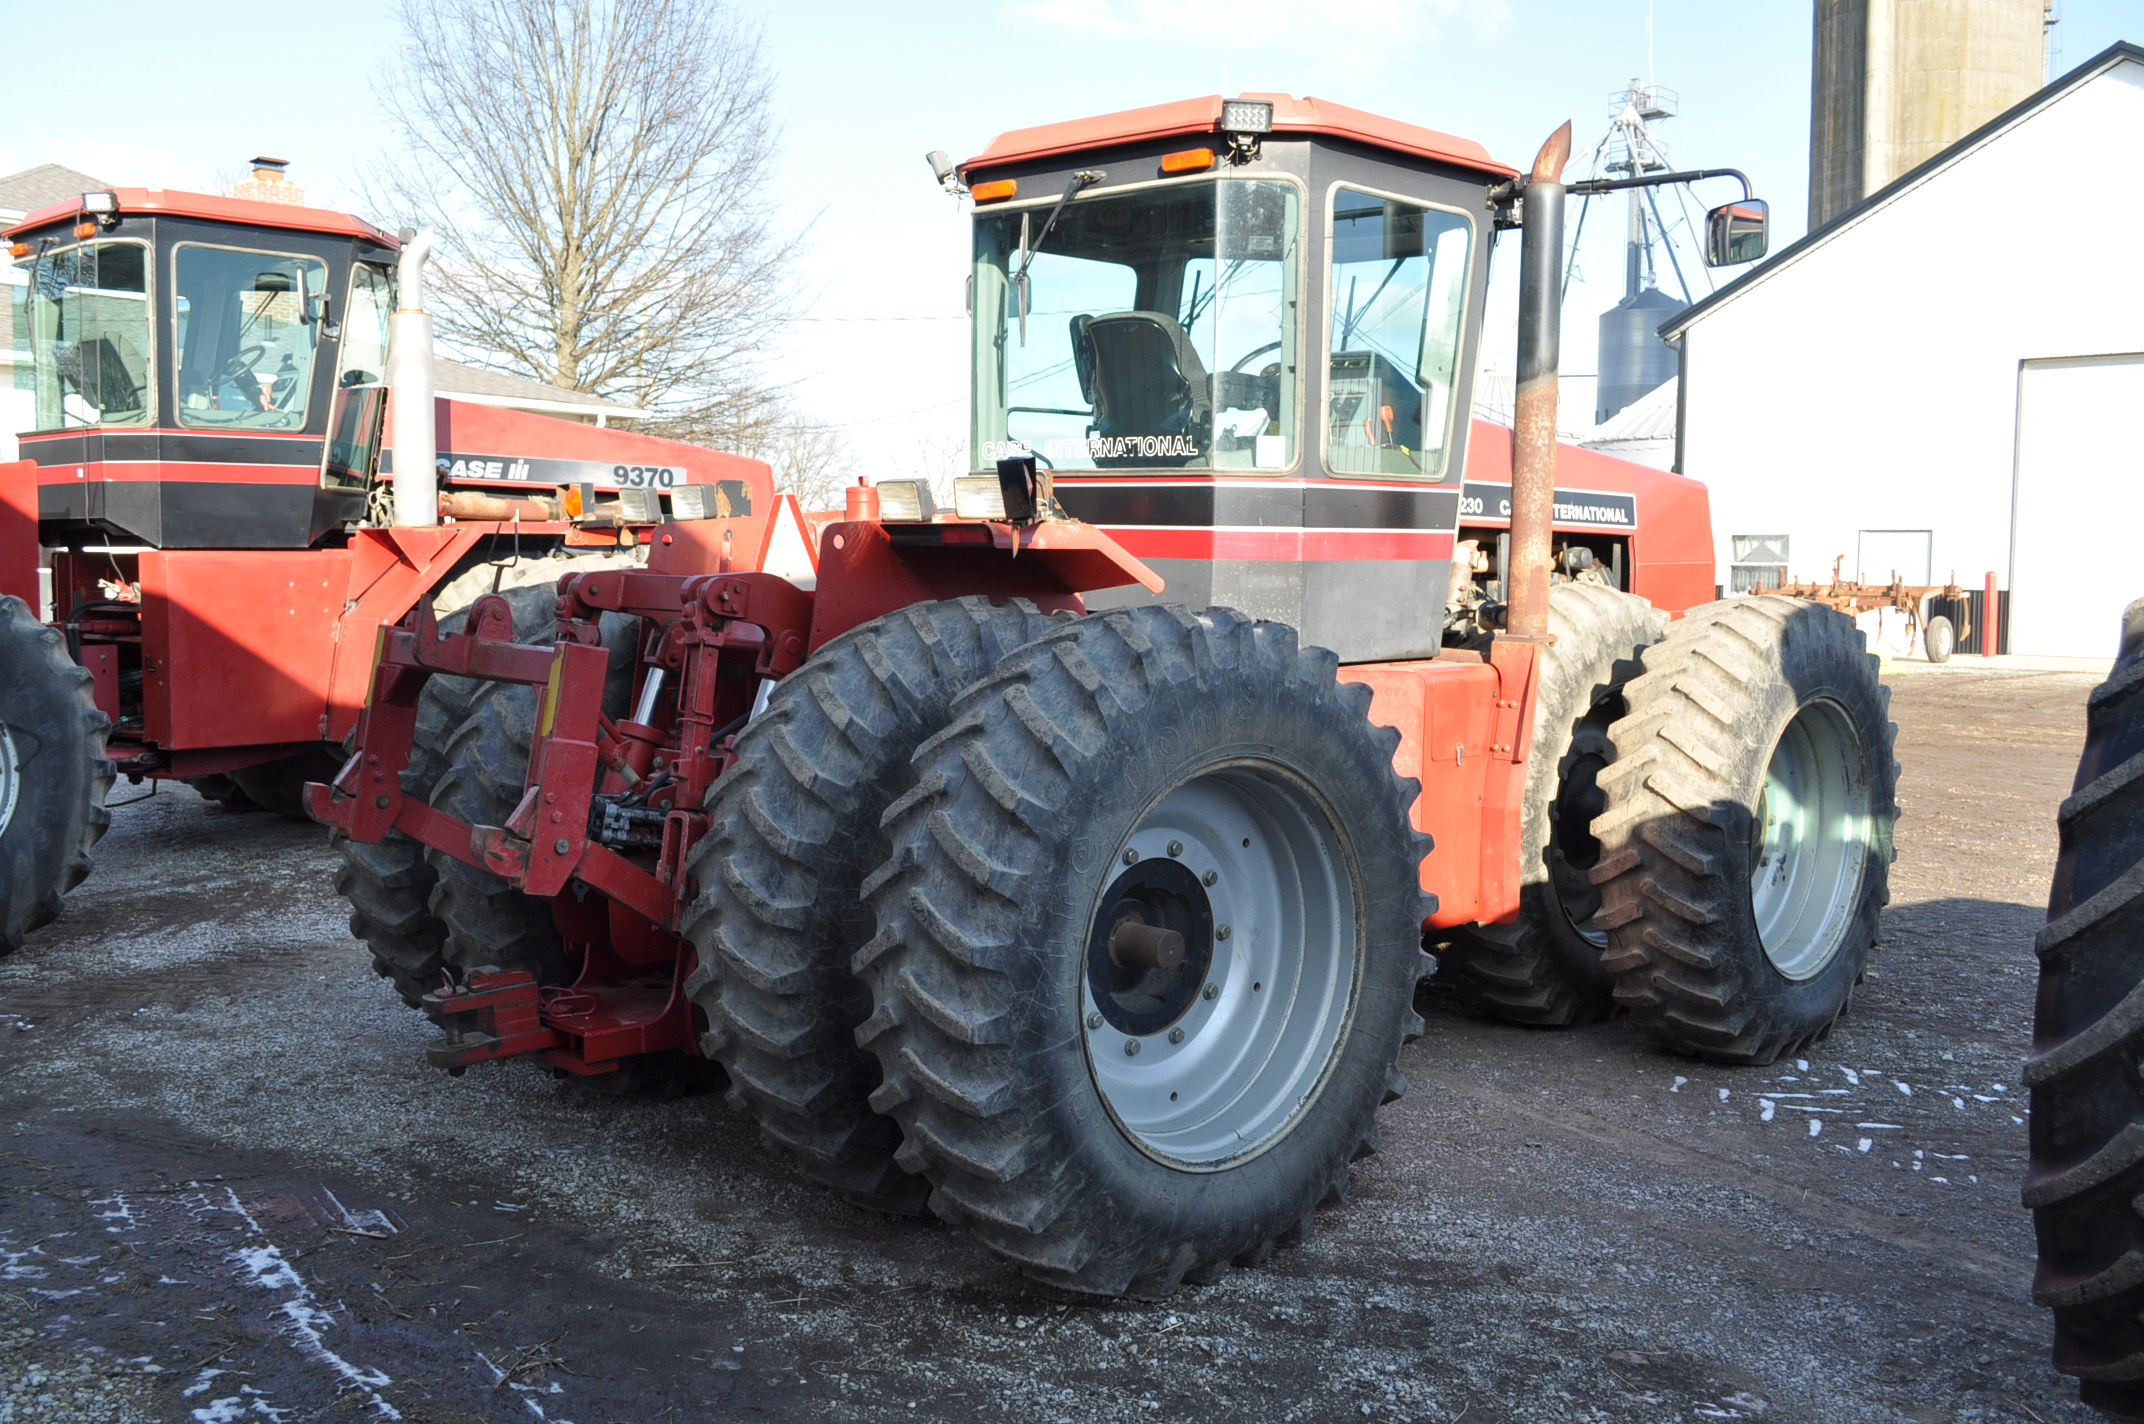 Case IH 9230 4WD tractor, 18.4-38 duals, power shift, skip shift, 4 hyd remotes, 3pt, quick hitch, - Image 4 of 23